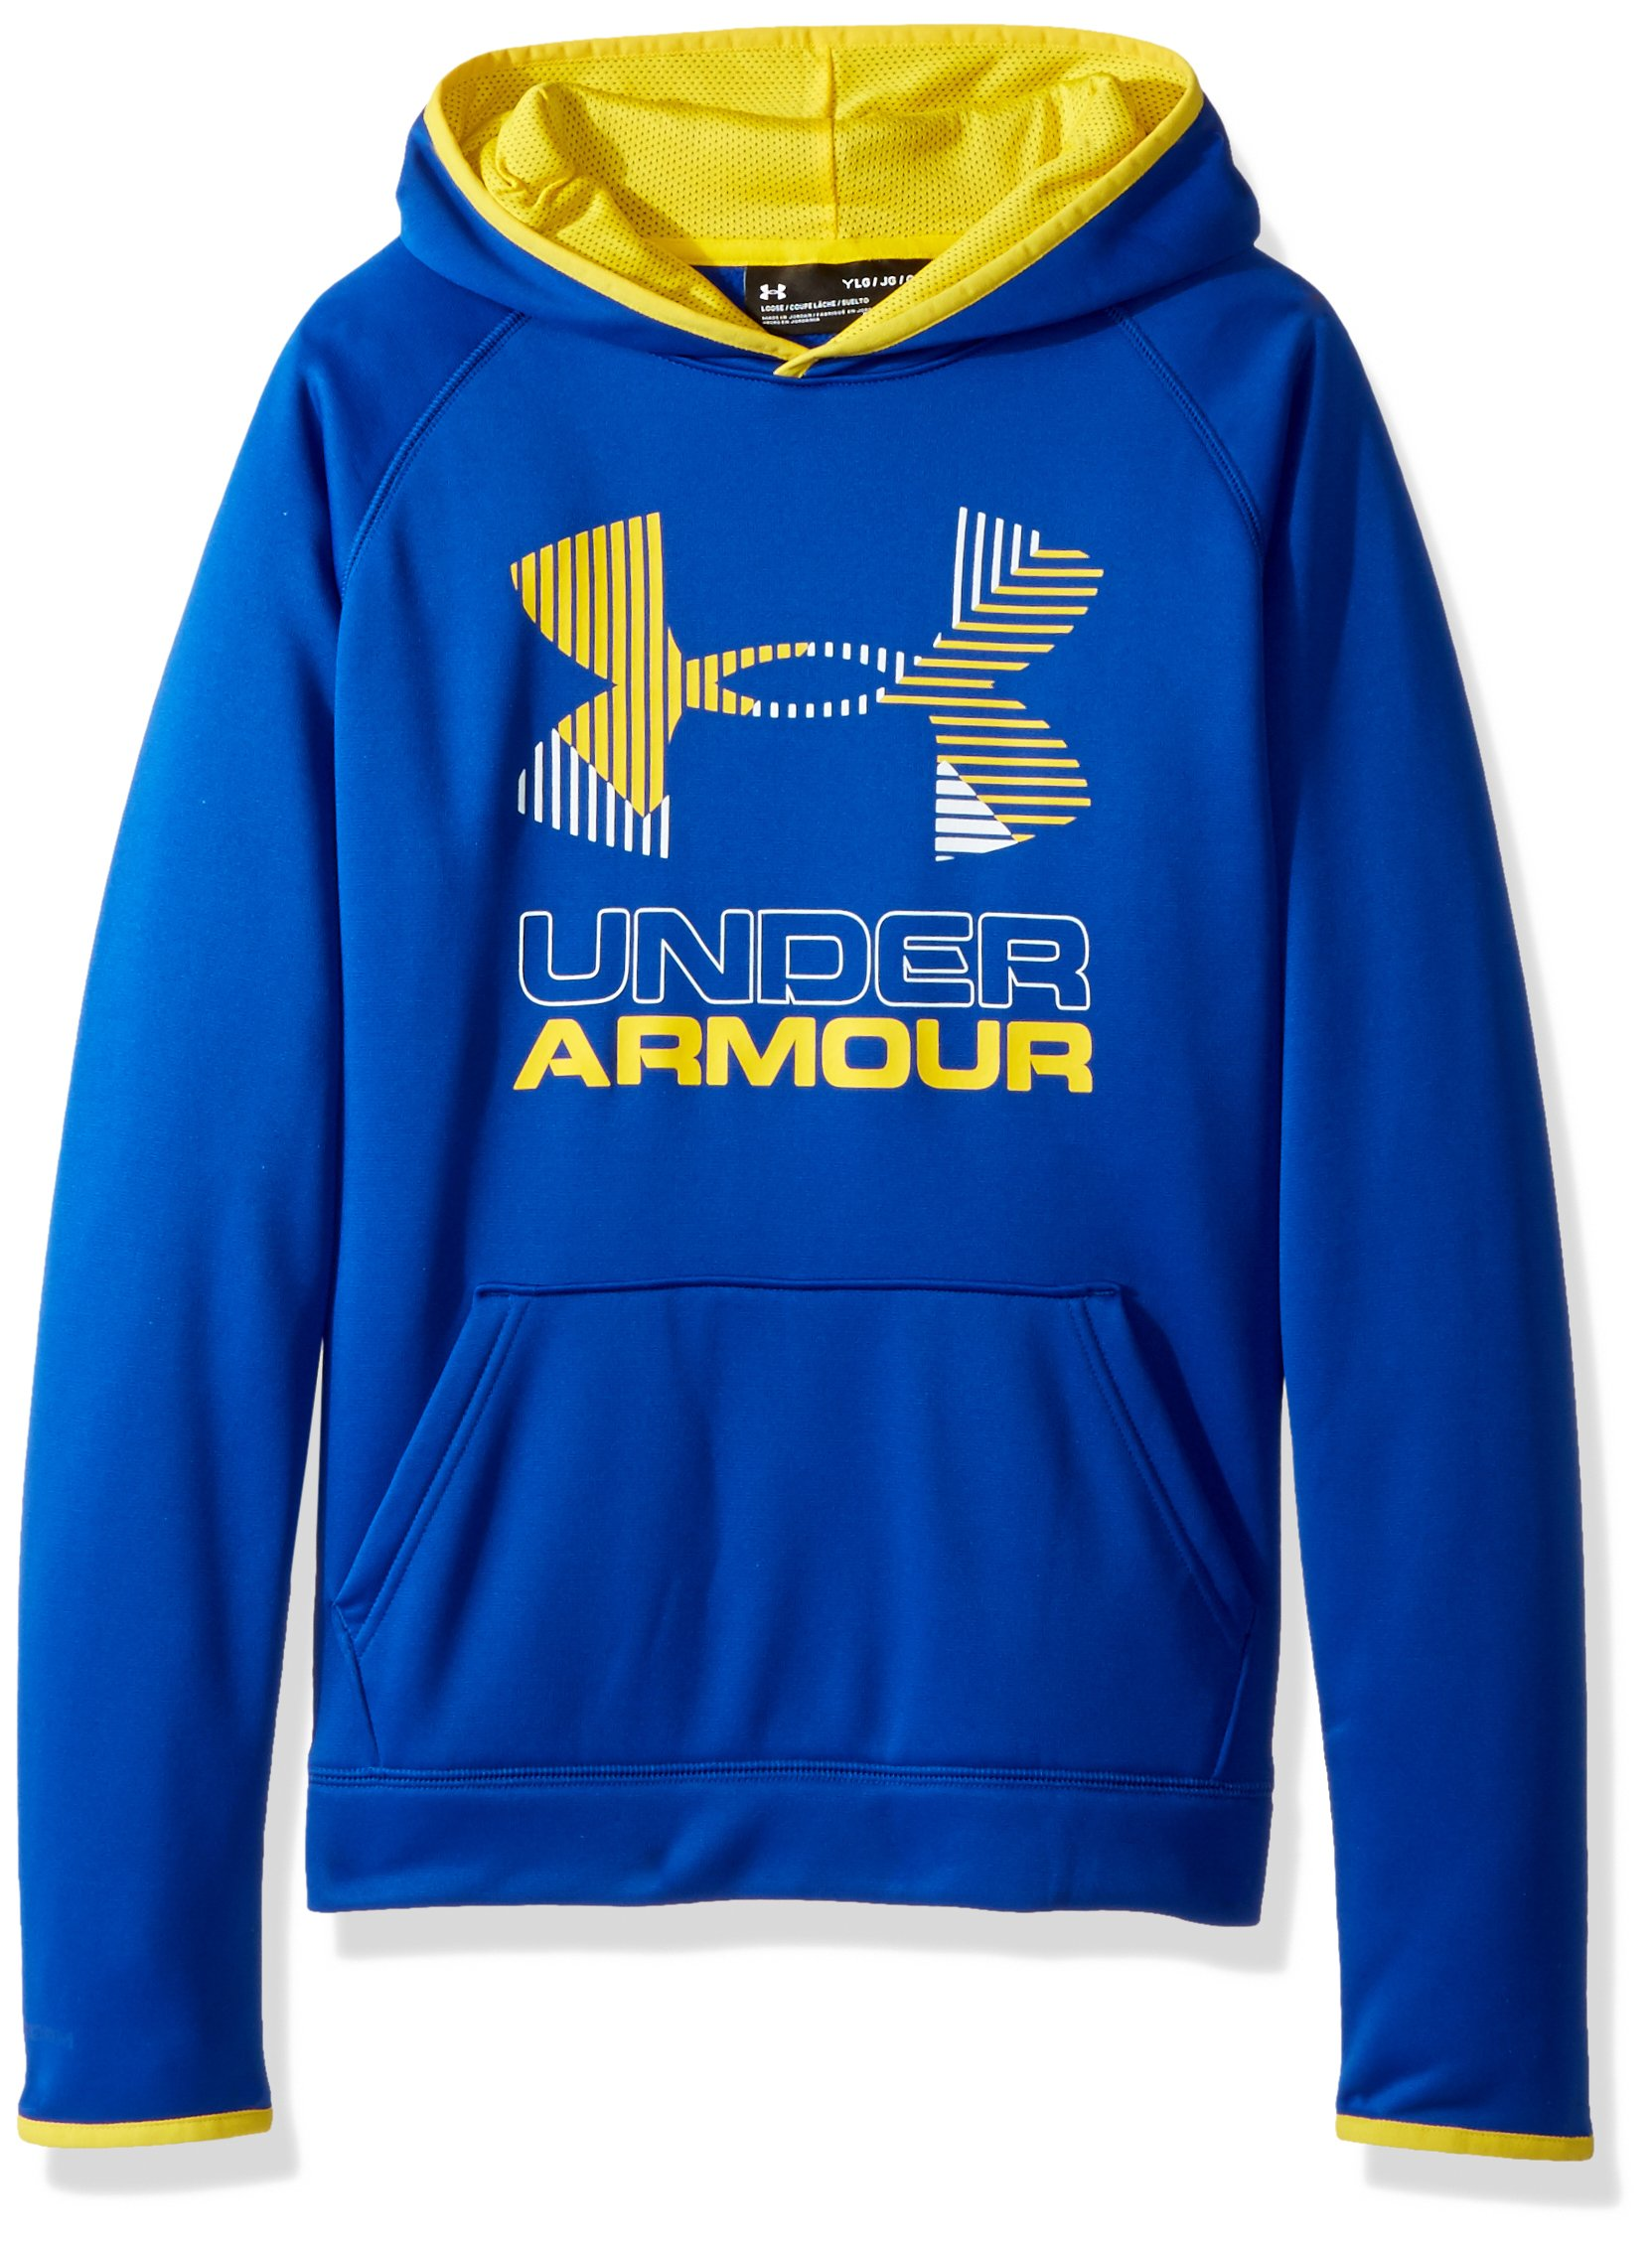 Under Armour Boys' Armour Fleece Solid Big Logo Hoodie, Royal /Yellow Ray, Youth Medium by Under Armour